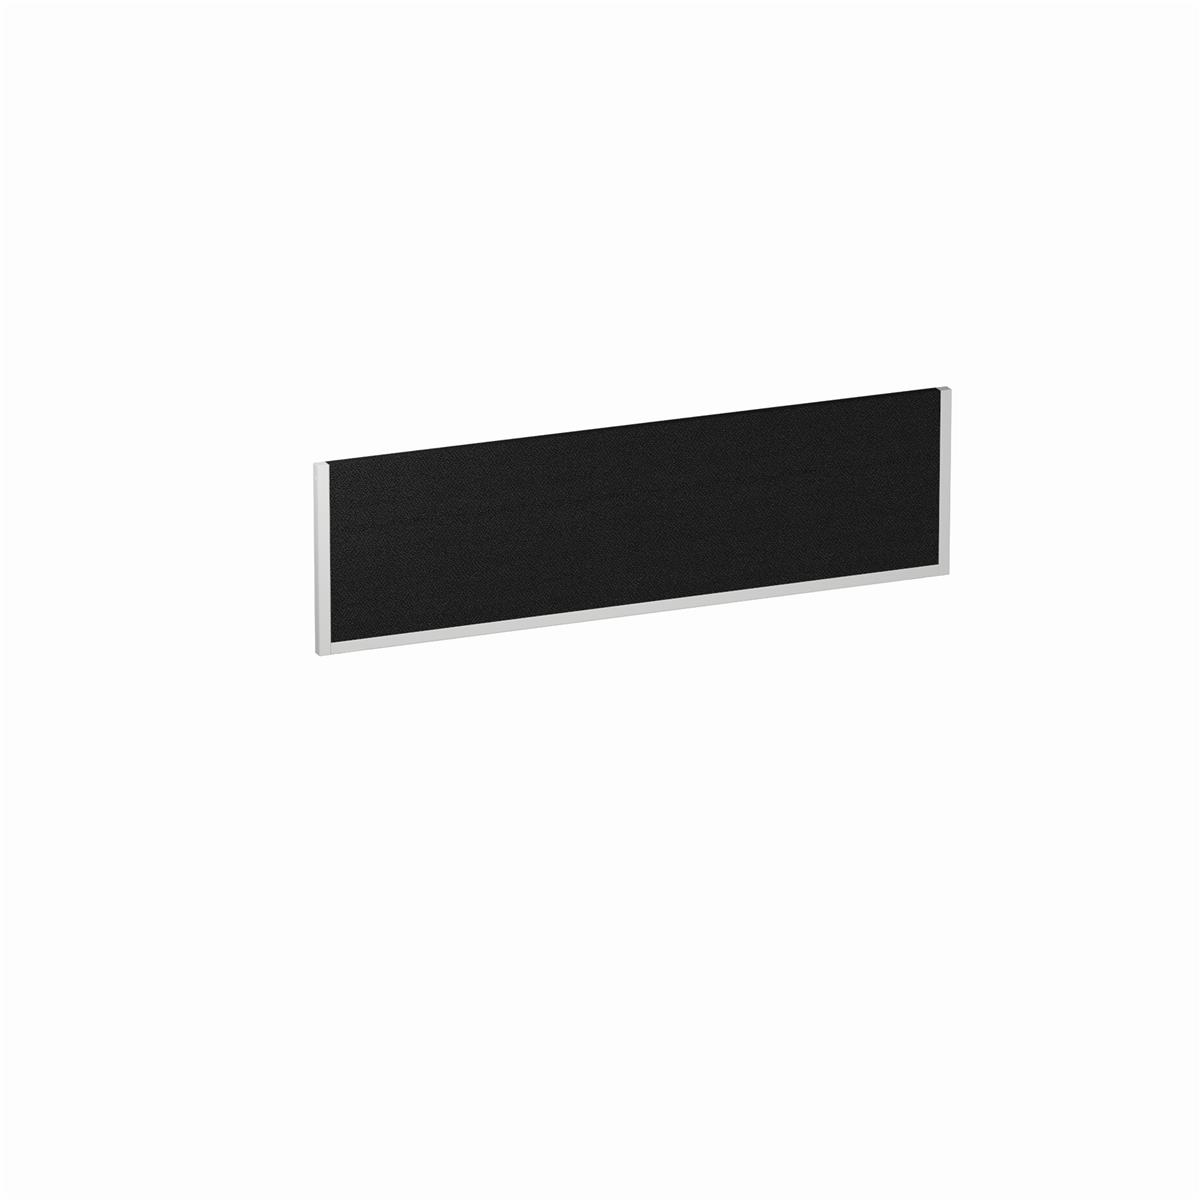 Image for Trexus Desk Screen 1400mm Black with White Frame